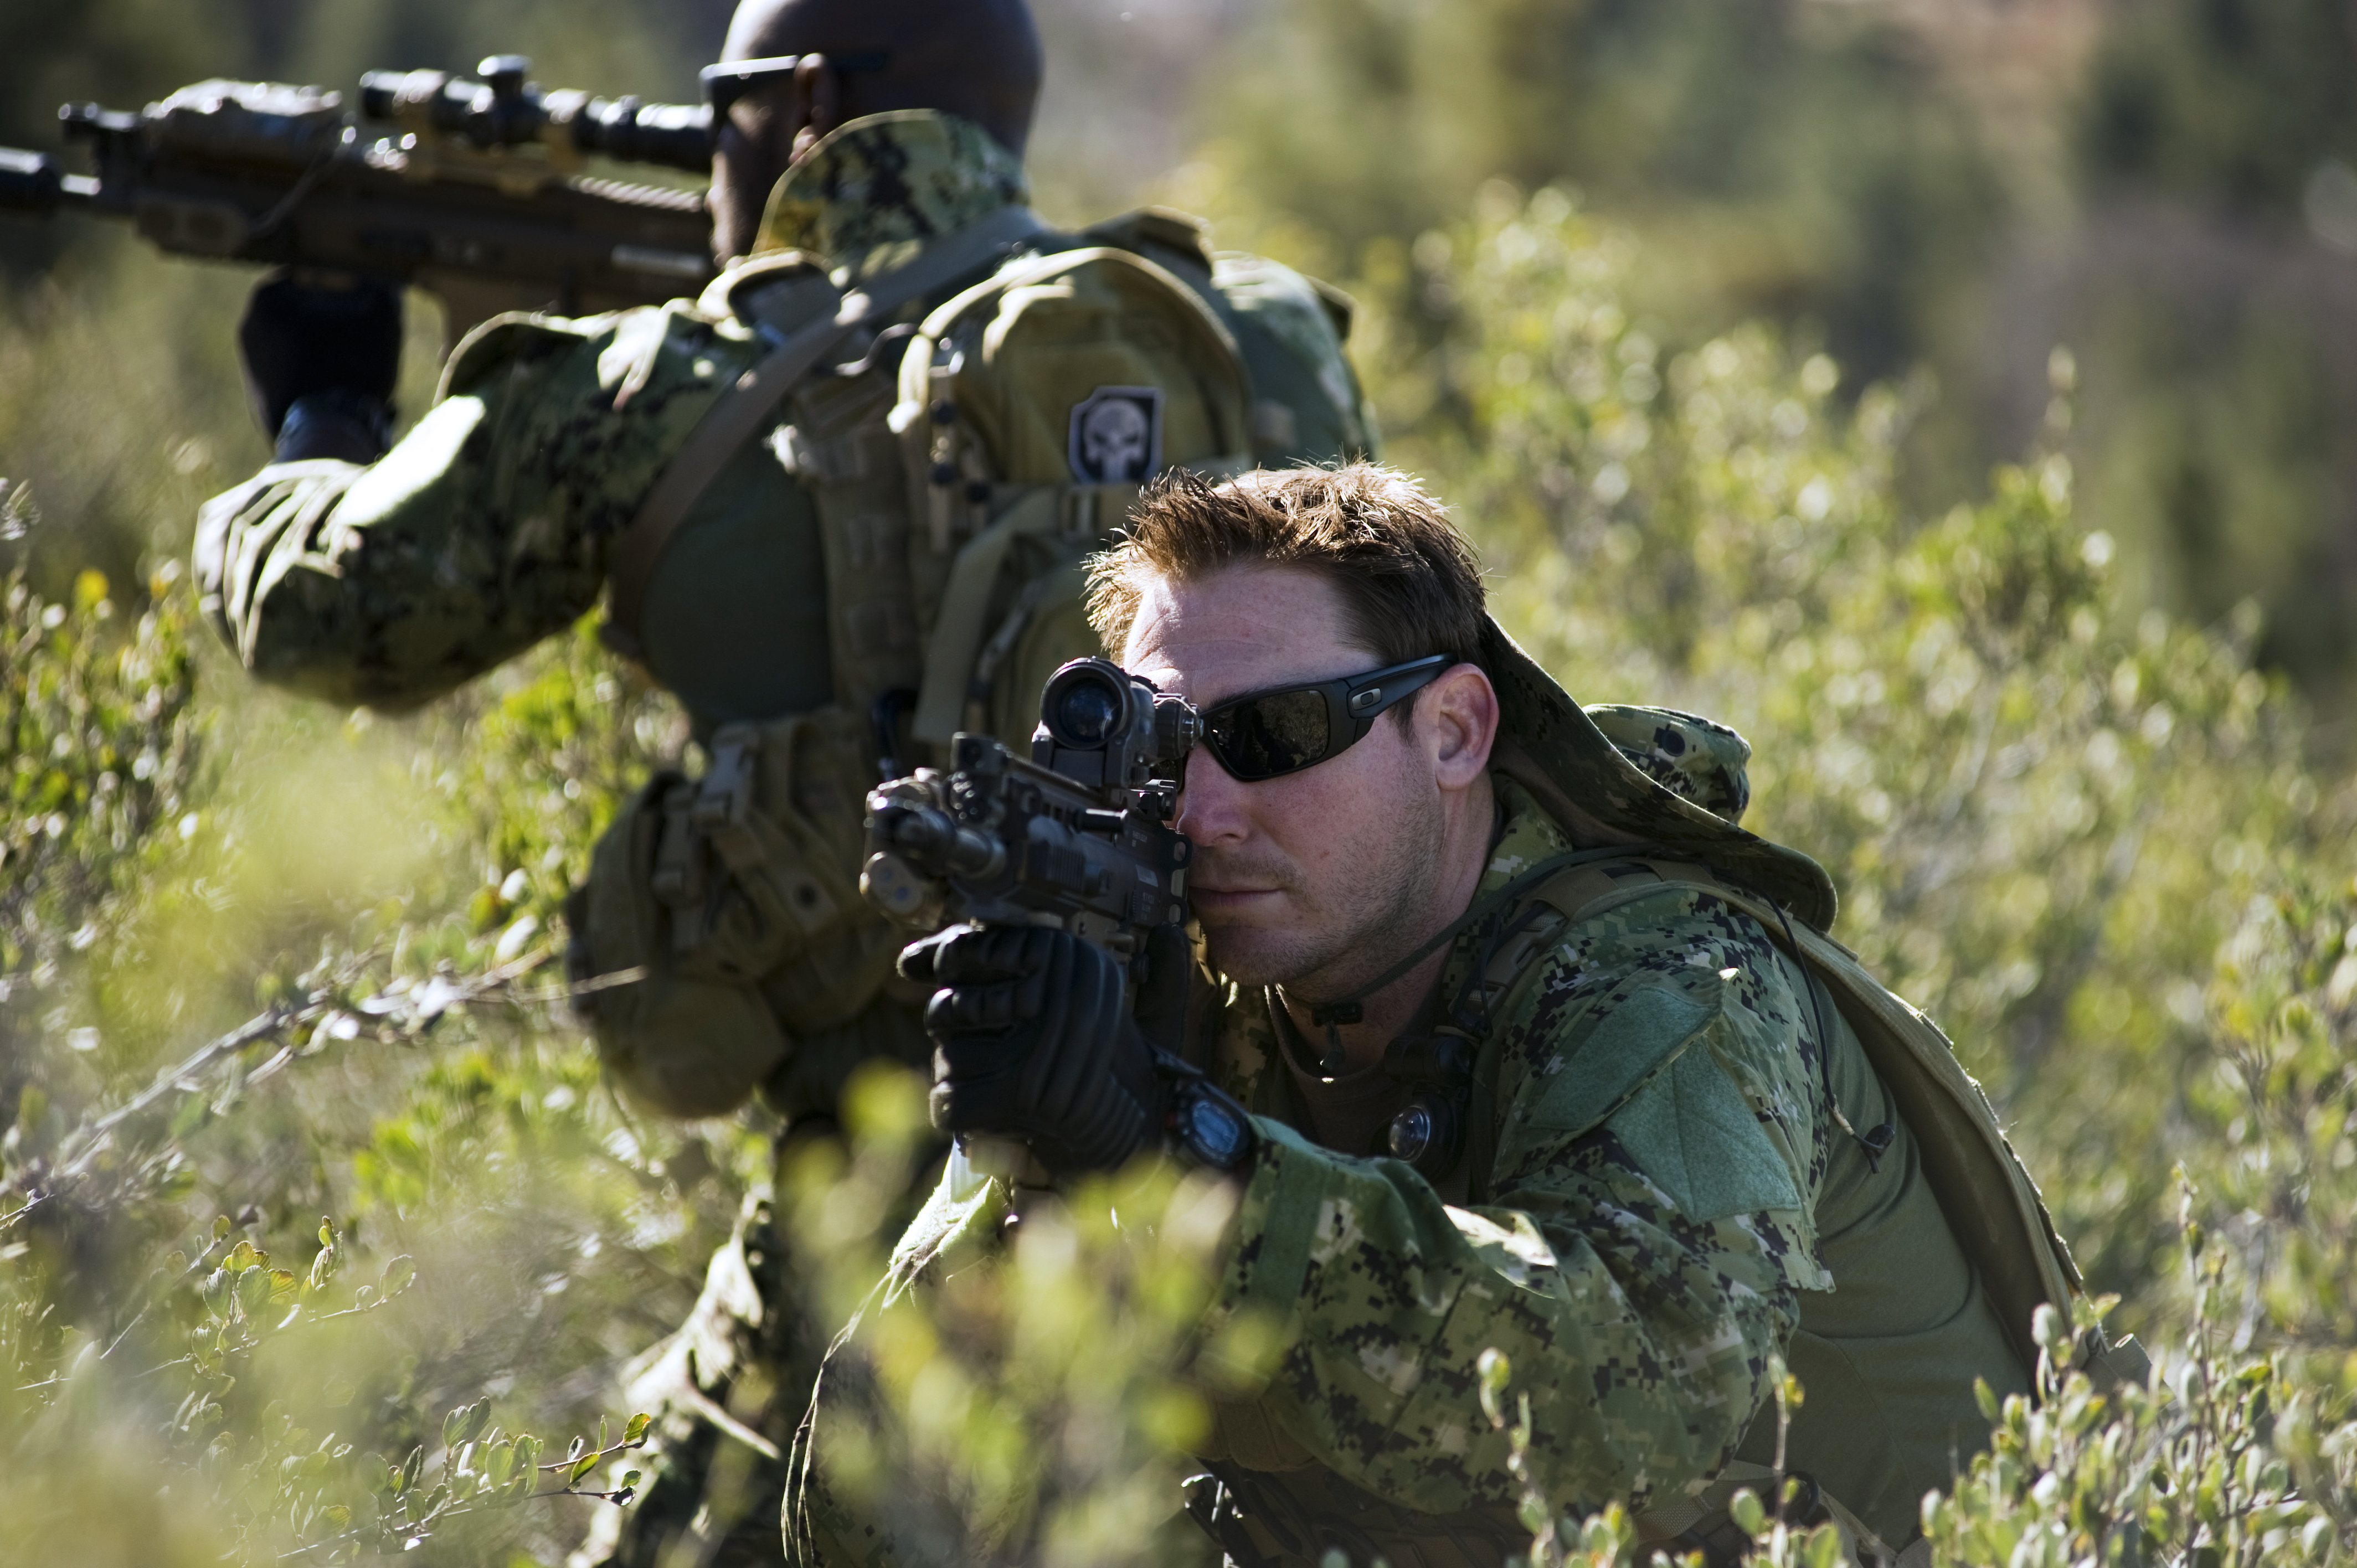 U S Navy SEALs conduct training on land and in water